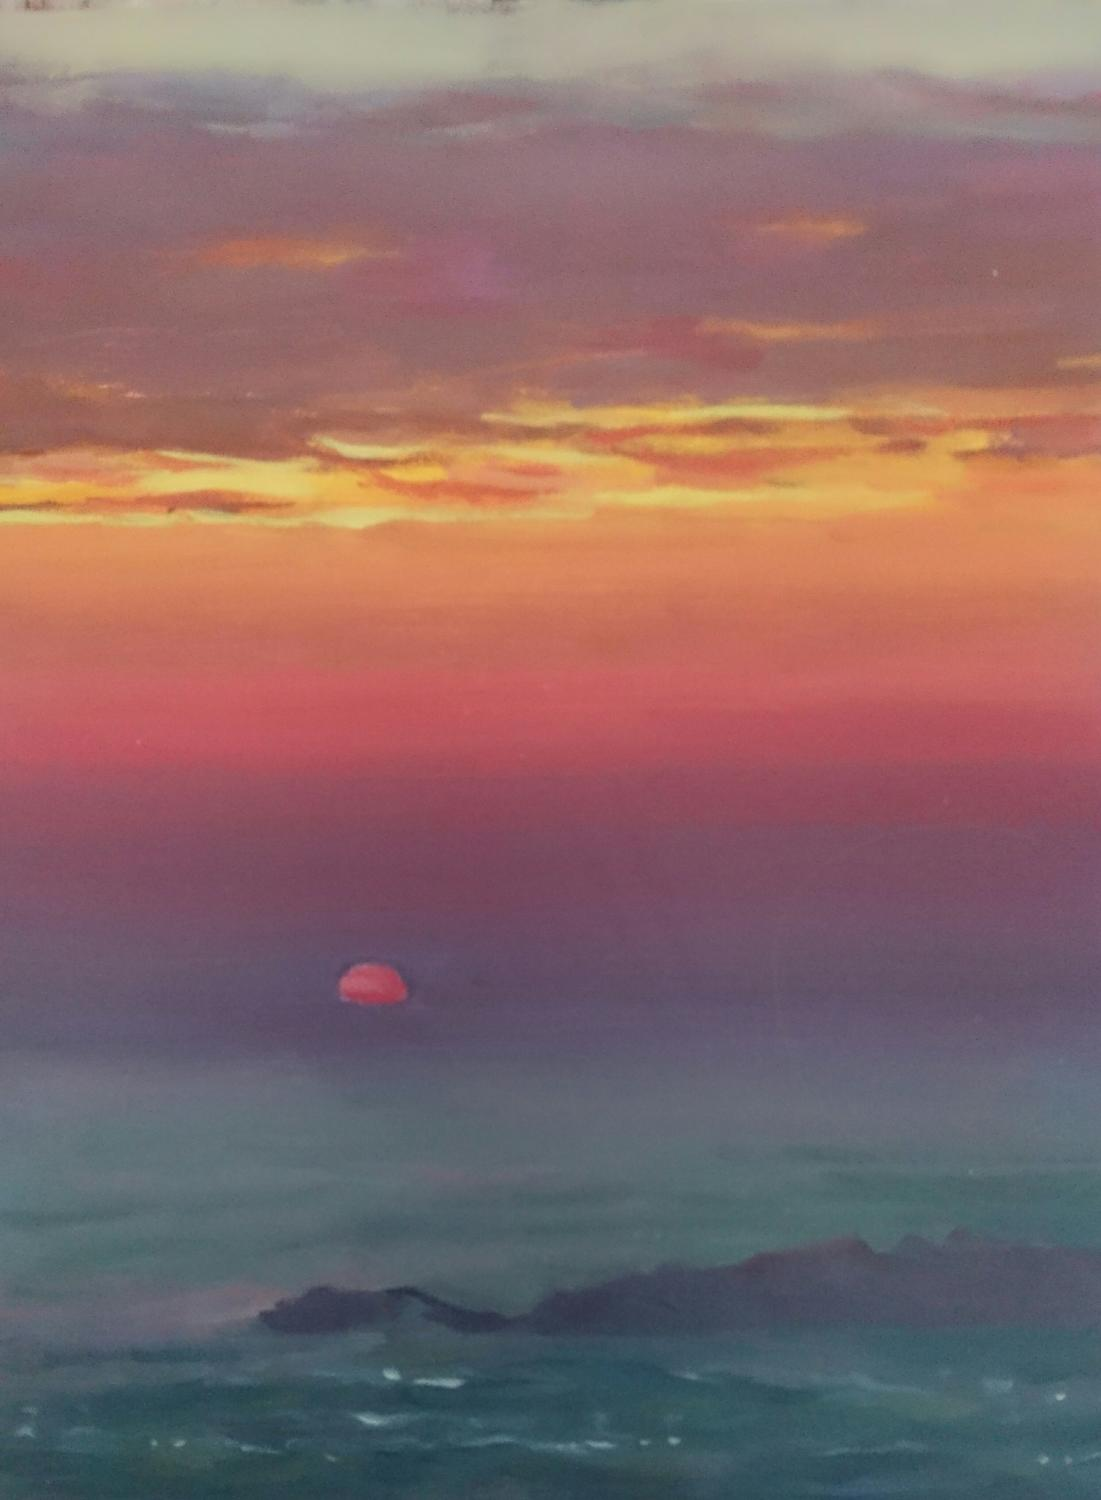 Skyros sunrise, oil on board, 2018